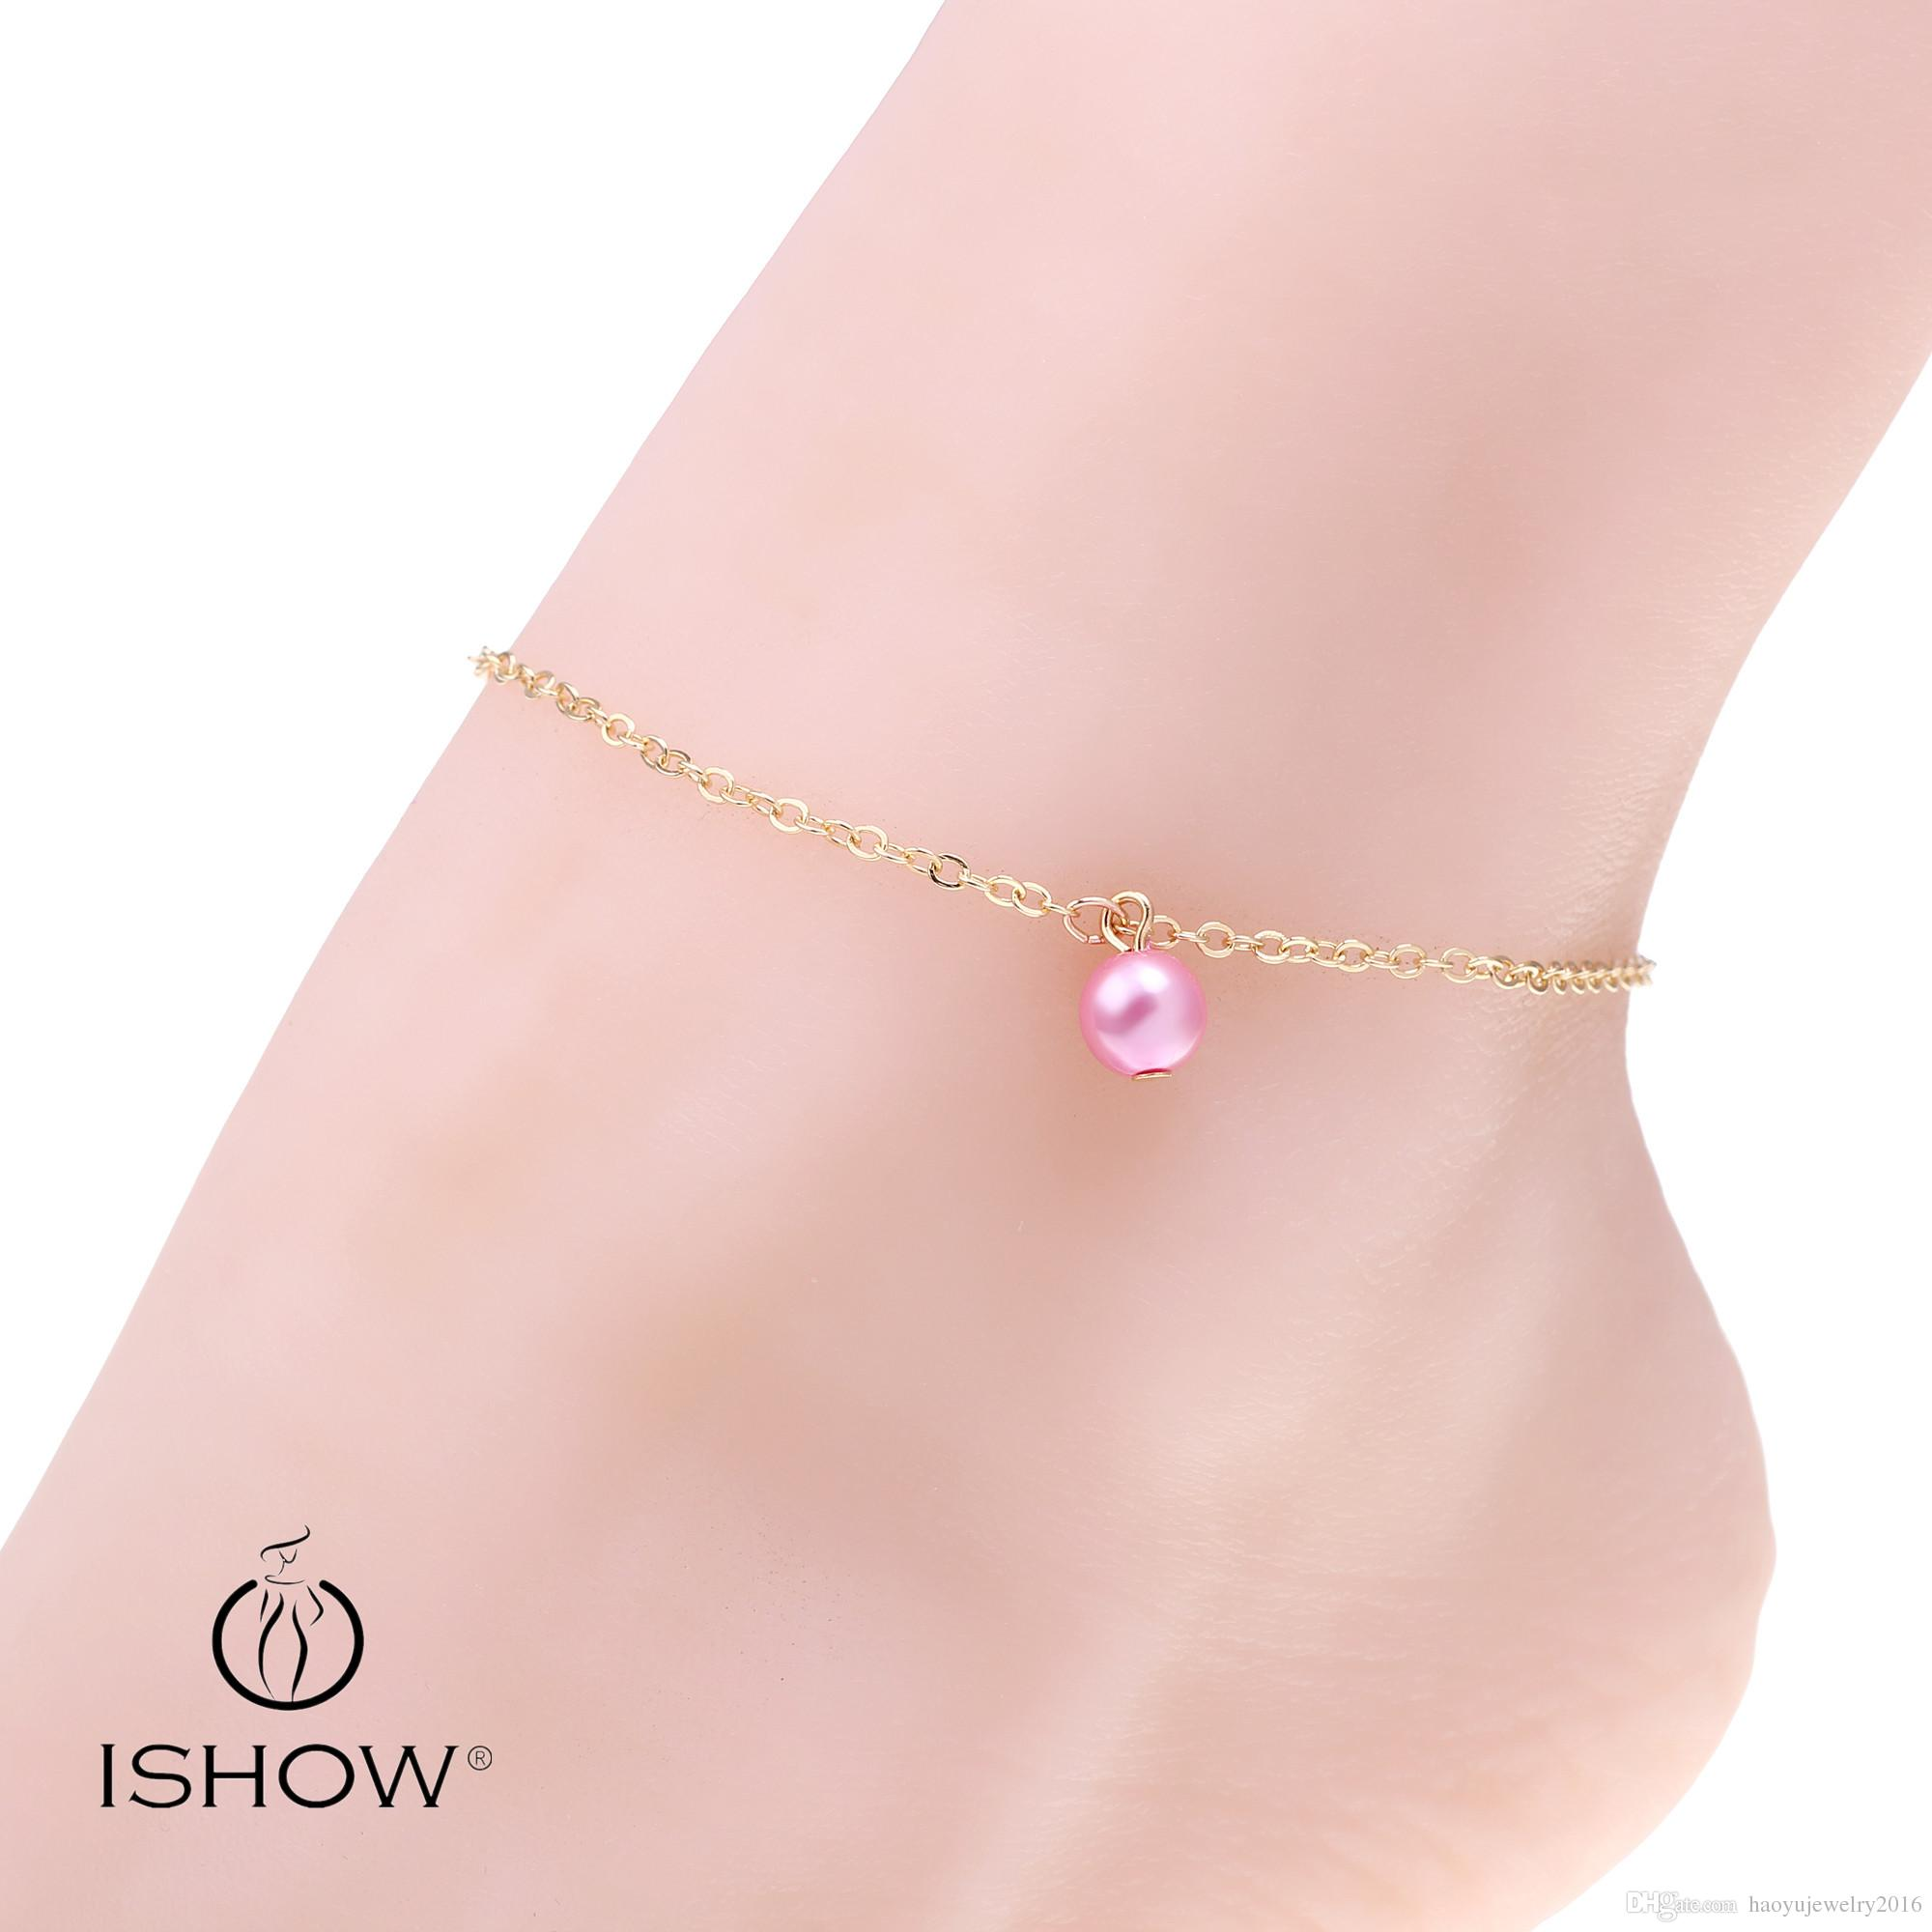 have bracelets bracelet peek on you out our cute exclusive the can webpage summer check ring lace must wearing in and anklet woman sale fun get below foot jewelry toe a ankle sun handmade by so